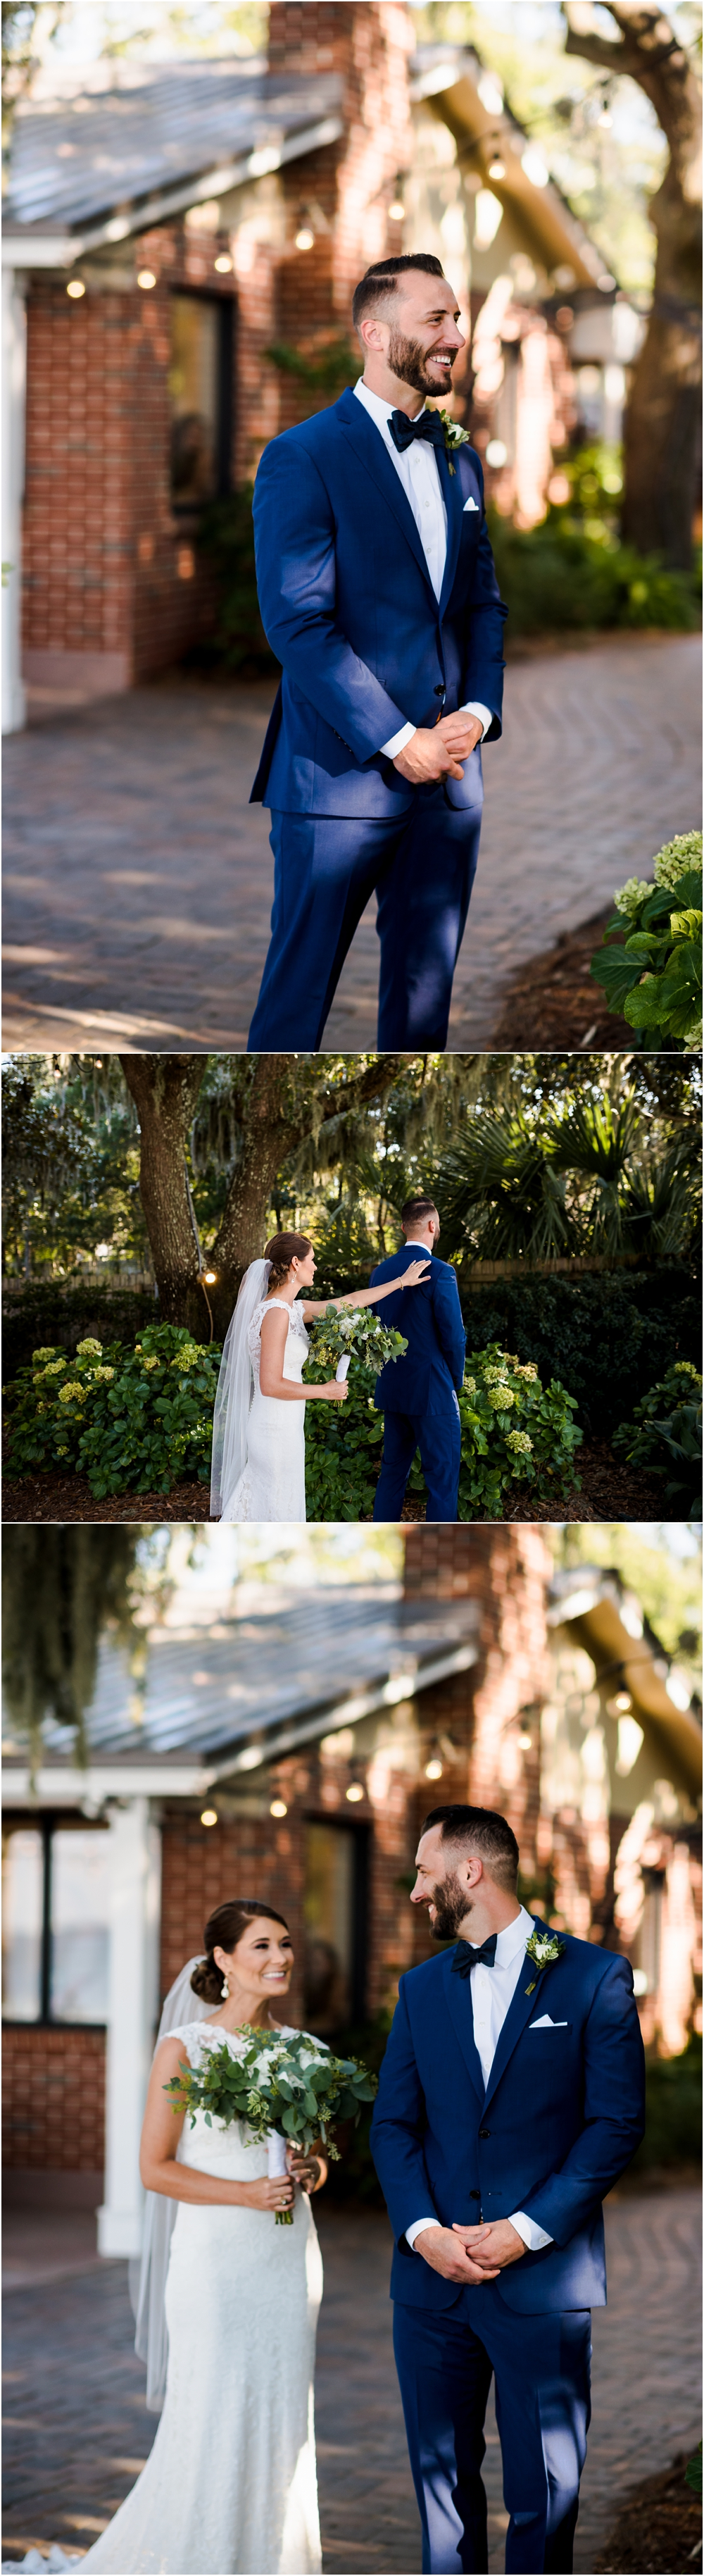 varner-florida-wedding-photographer-30a-panama-city-beach-destin-tallahassee-kiersten-grant-photography-44.jpg